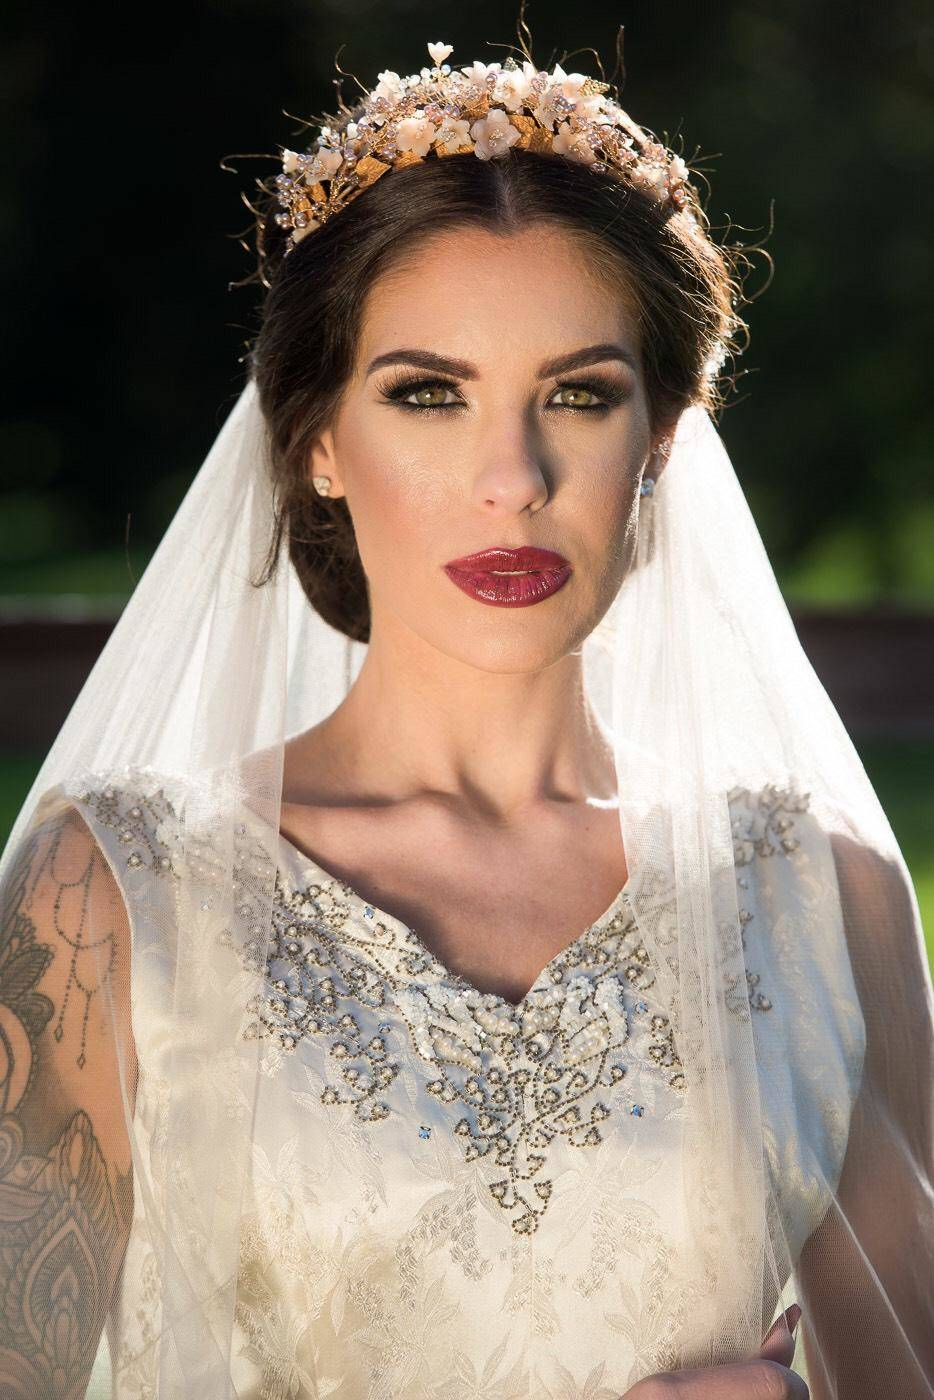 wedding hair wedding make up wedding tiara bride wedding dress real weddings